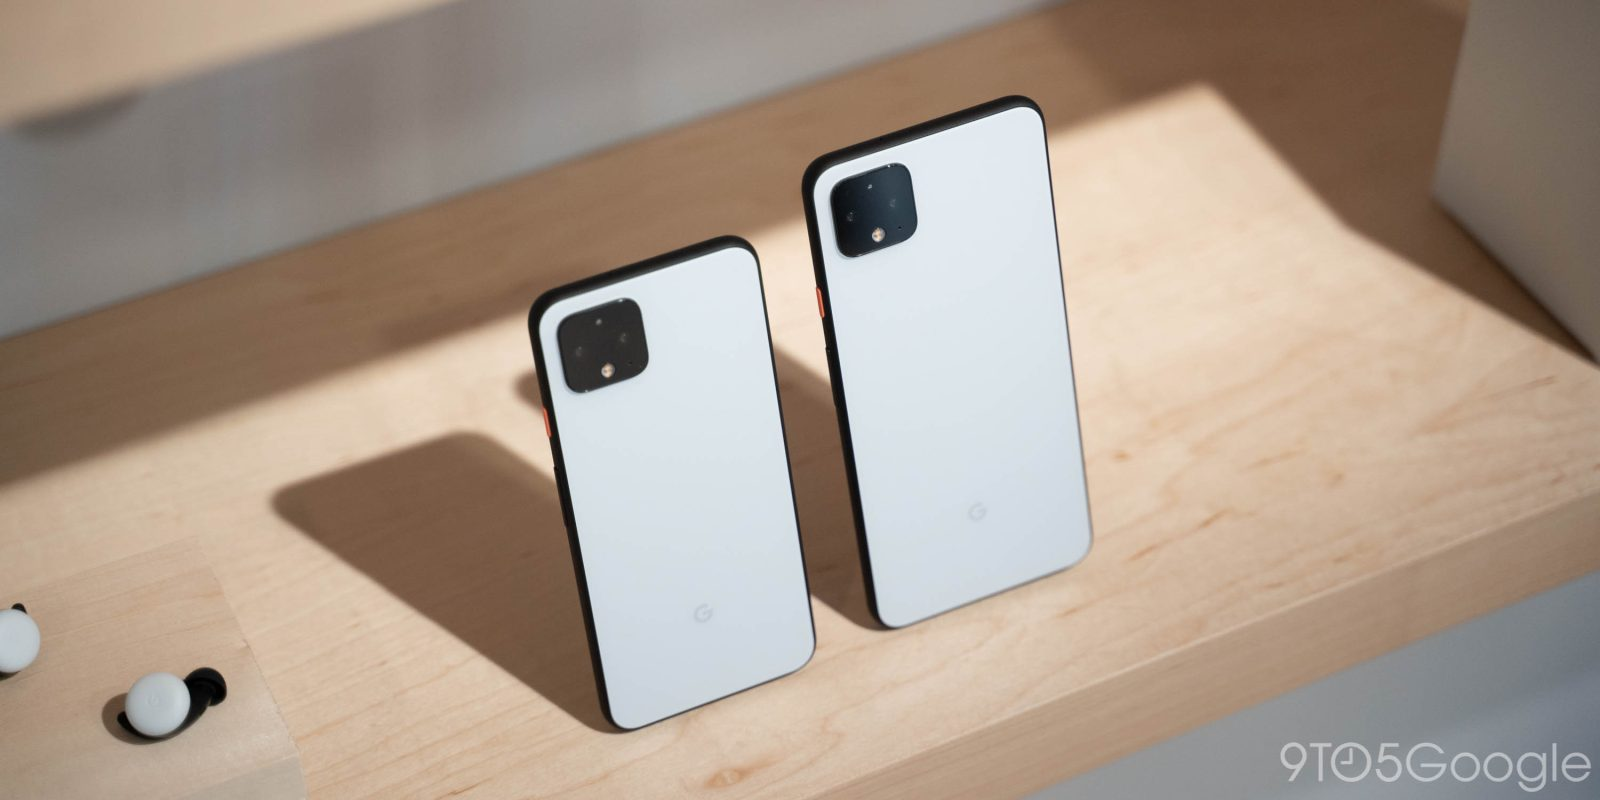 Are you buying a Pixel 4 or Pixel 4 XL? [Poll]